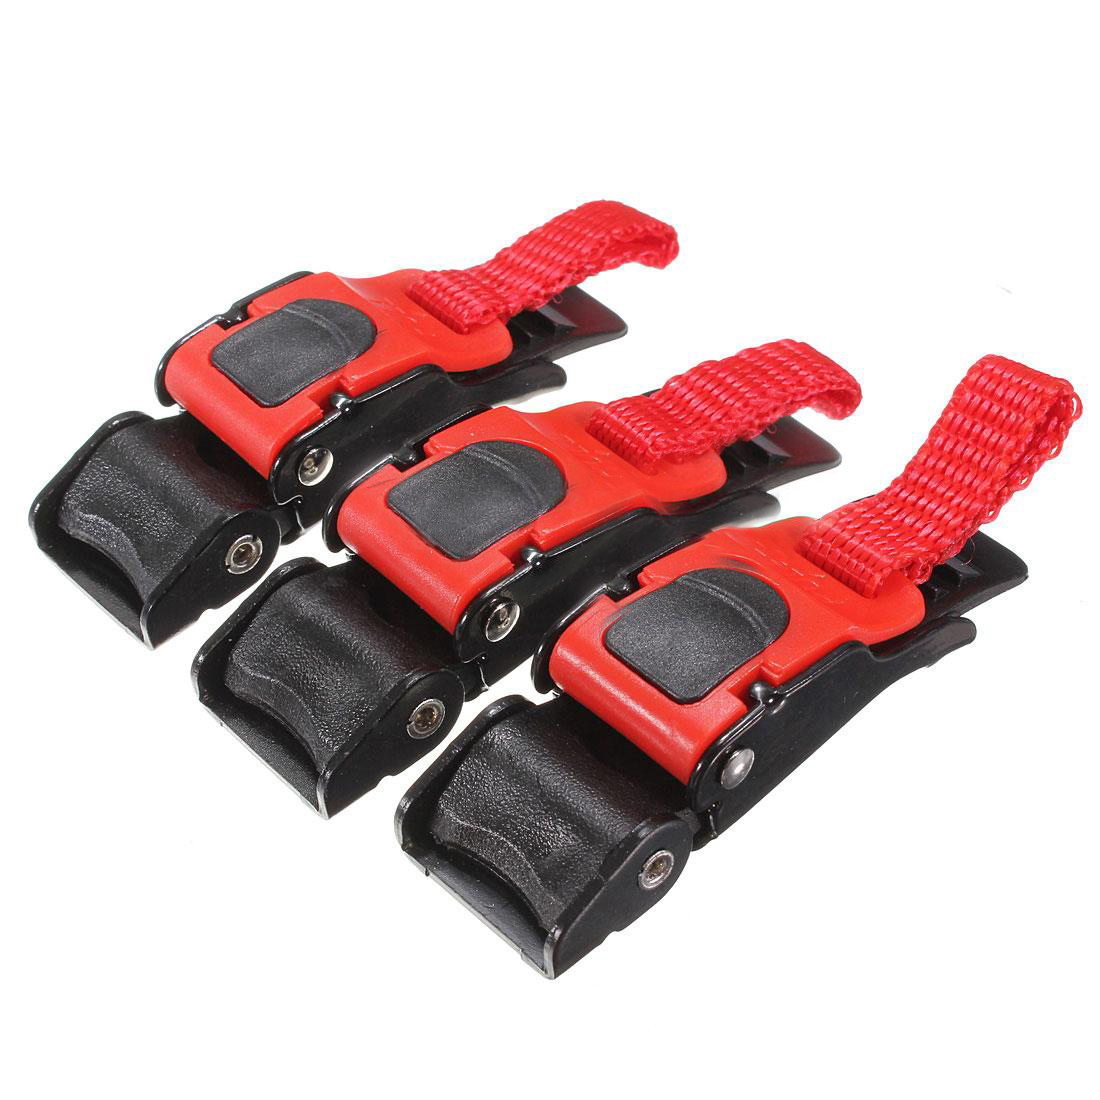 3x Plastic Motorcycle Helmet Speed Clip Chin Strap Quick Release Pull Buckle New Black+Red